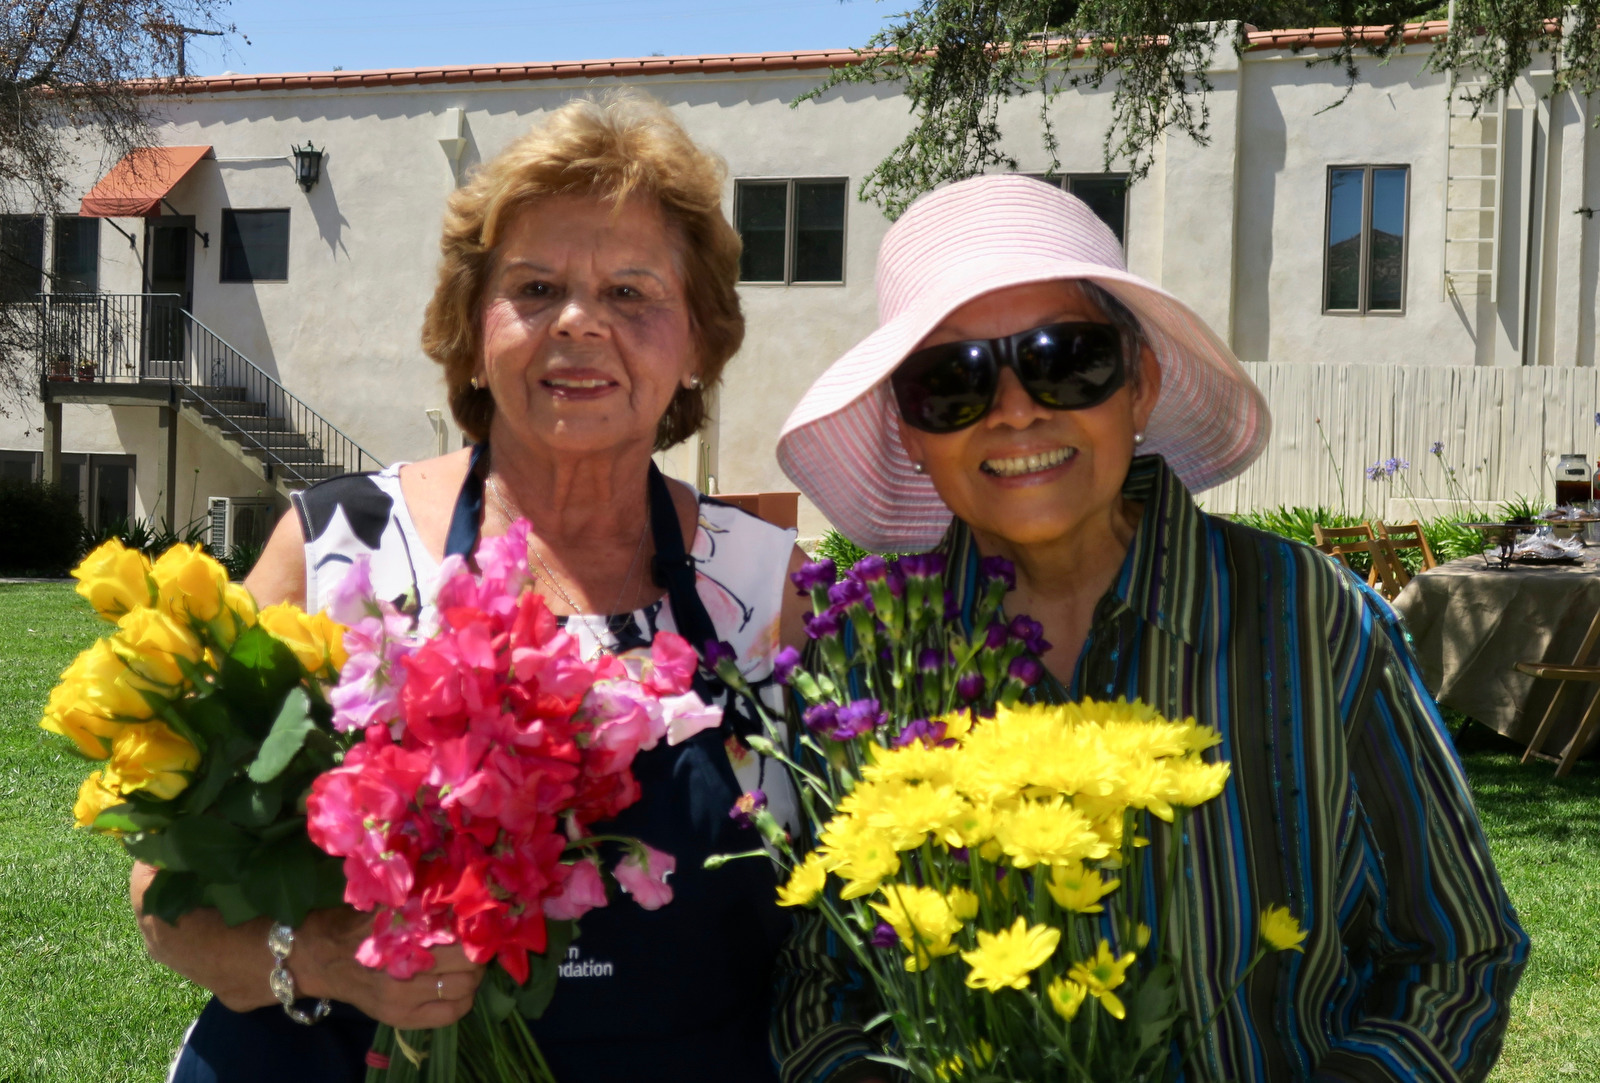 Volunteers Betty Dominguez and Carmen Romero, who have served for 19 years.